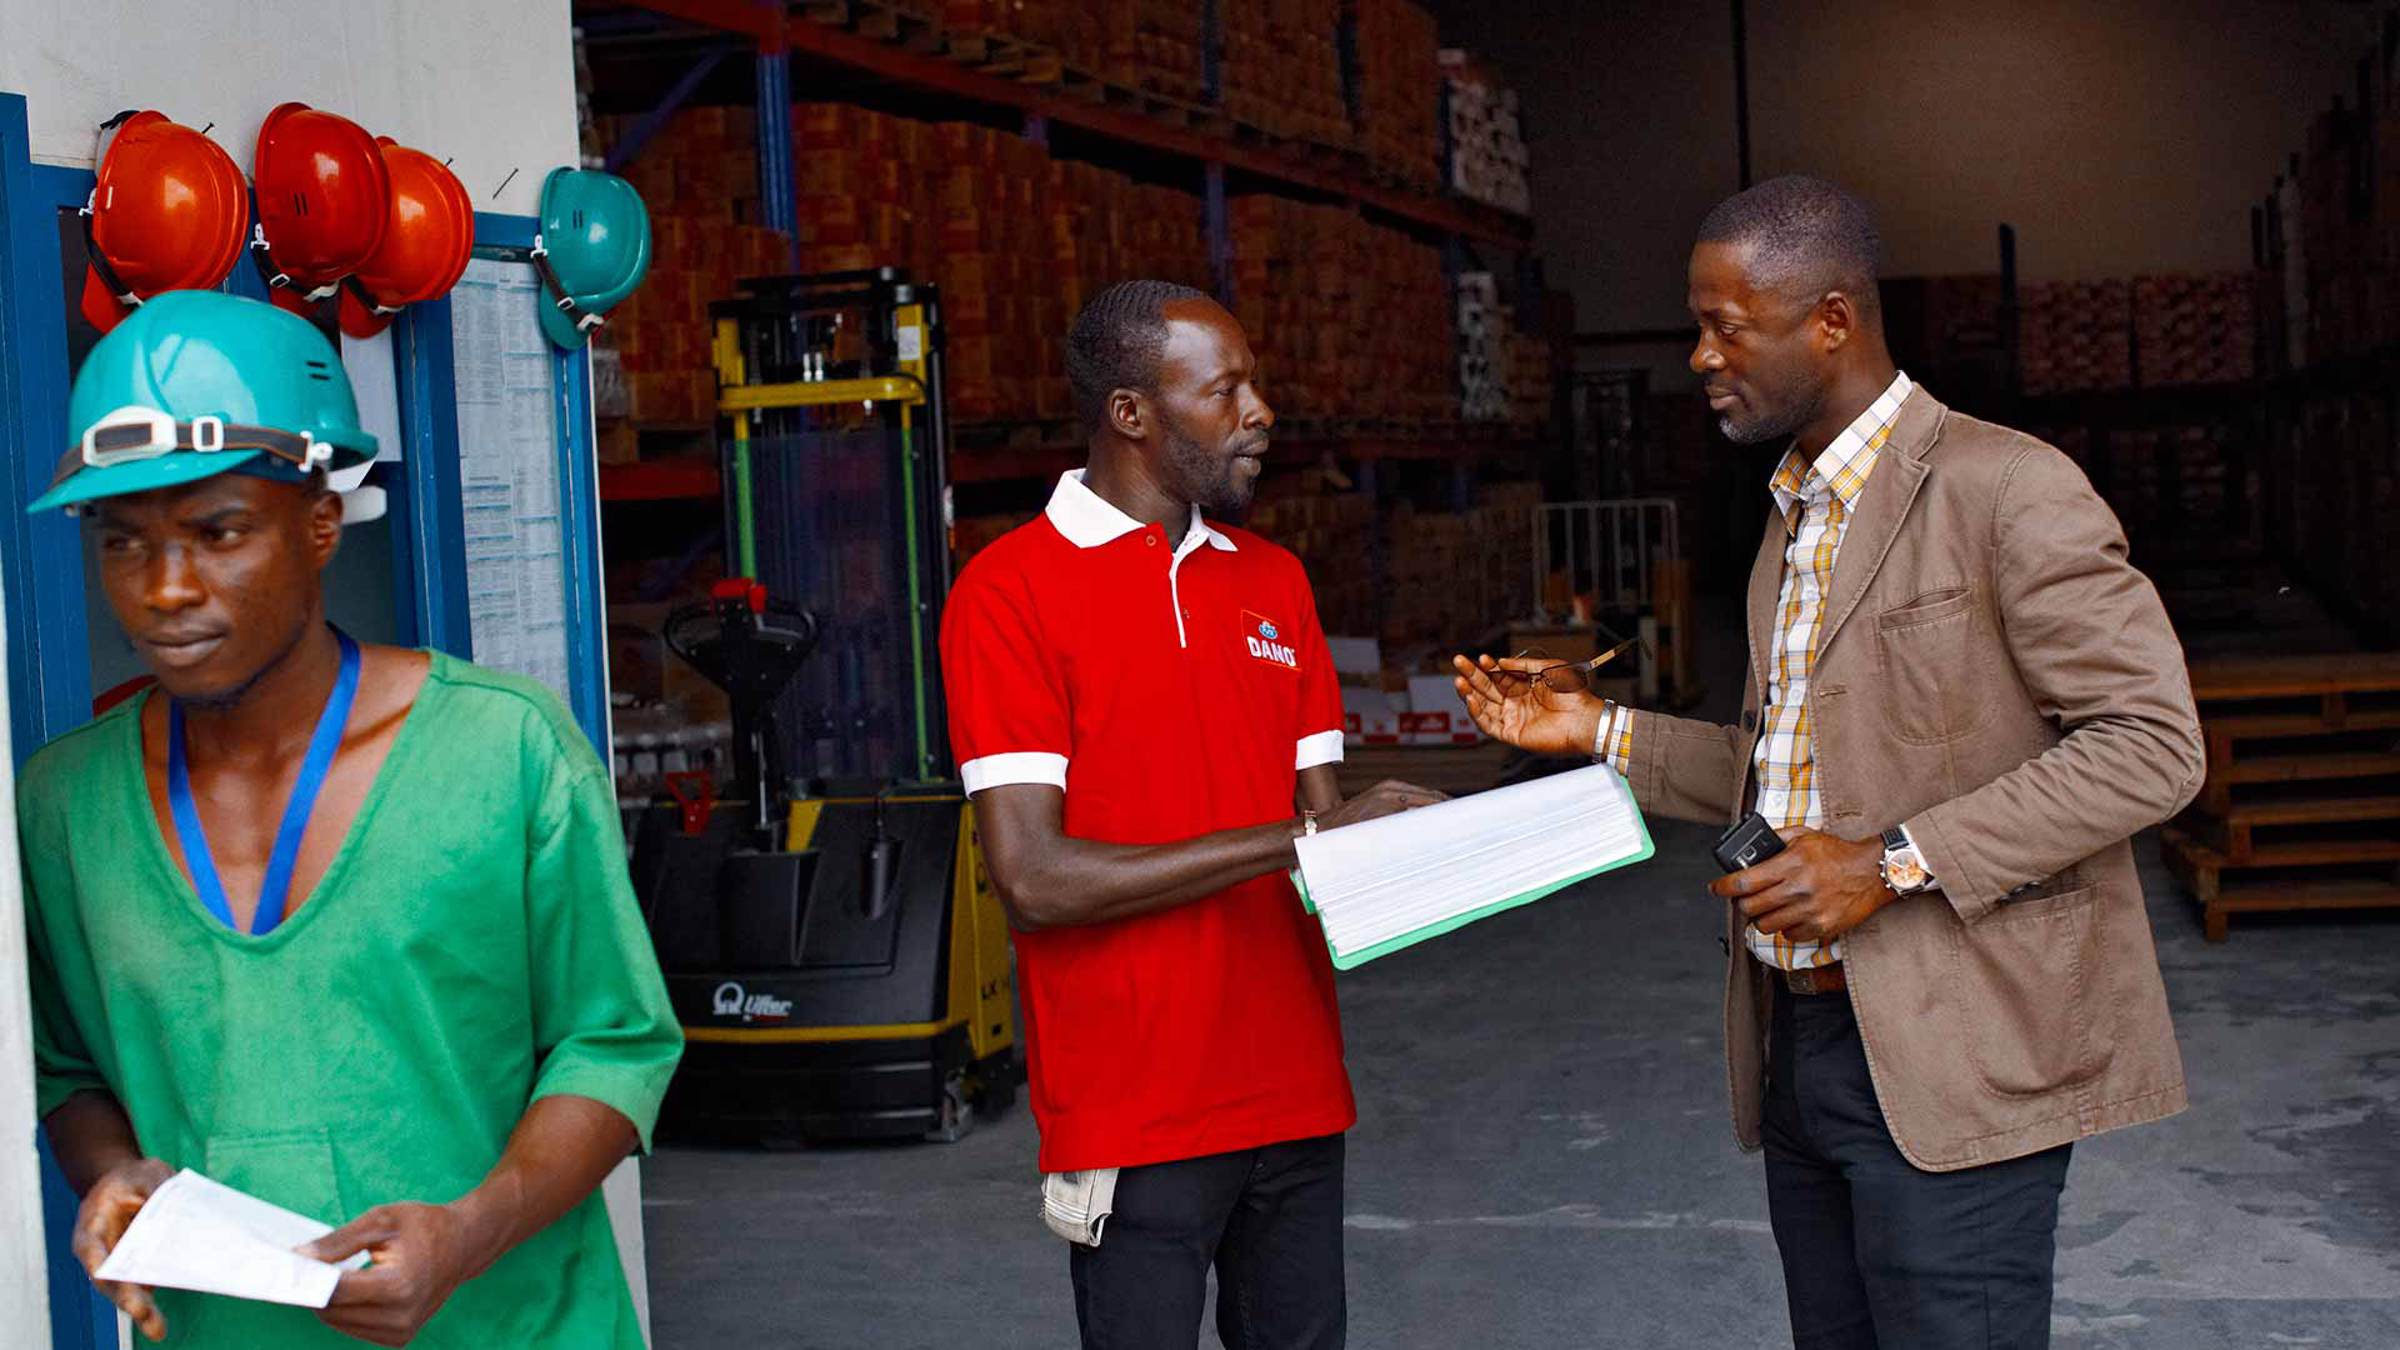 Arla workers talking at a warehouse